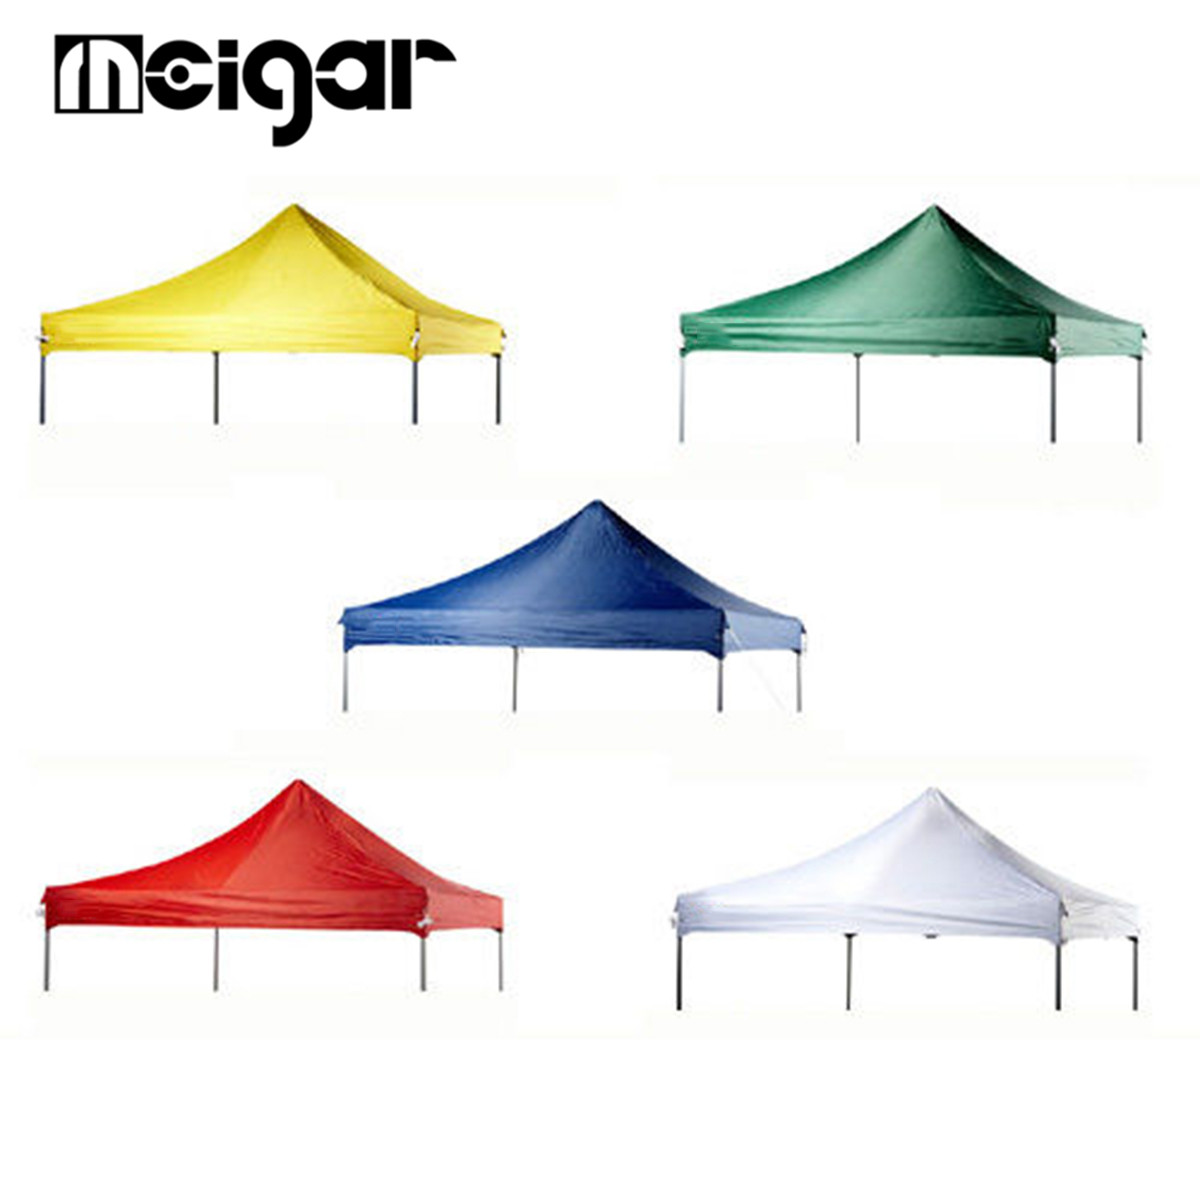 3X3m Tent Canopy Cover Top Roof Replacement Polyester Waterproof Sun Shade Cloth Cover Outdoor Garden Yard Shade Accessories